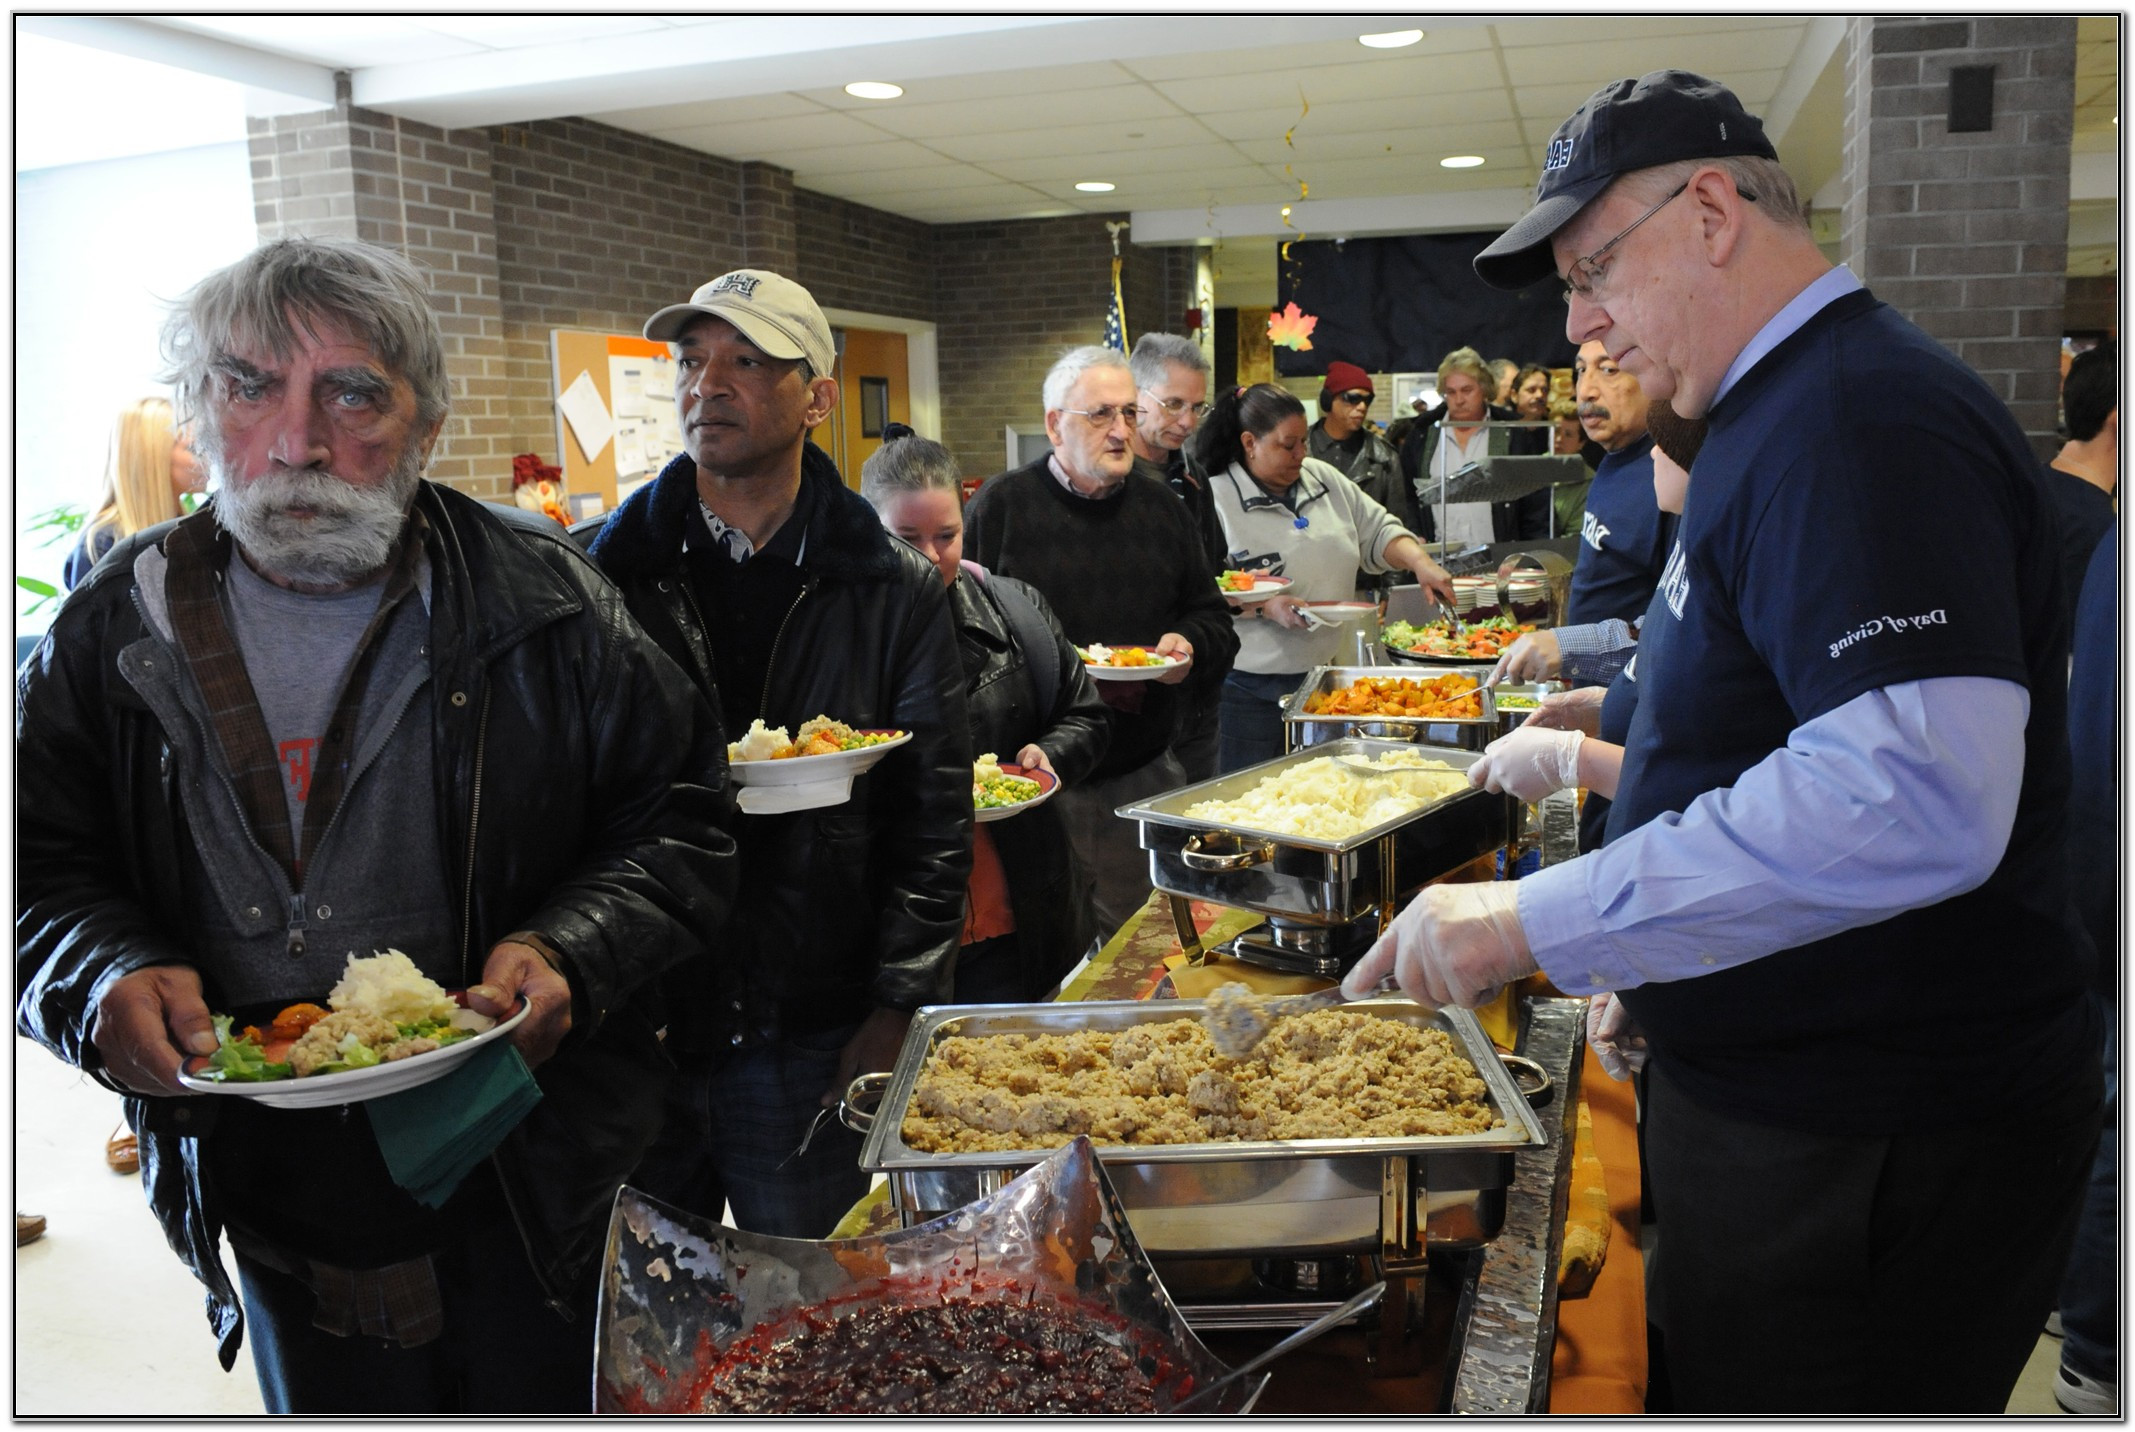 Thanksgiving Soup Kitchen Nyc  Soup Kitchen Volunteer Nyc Thanksgiving – Wow Blog